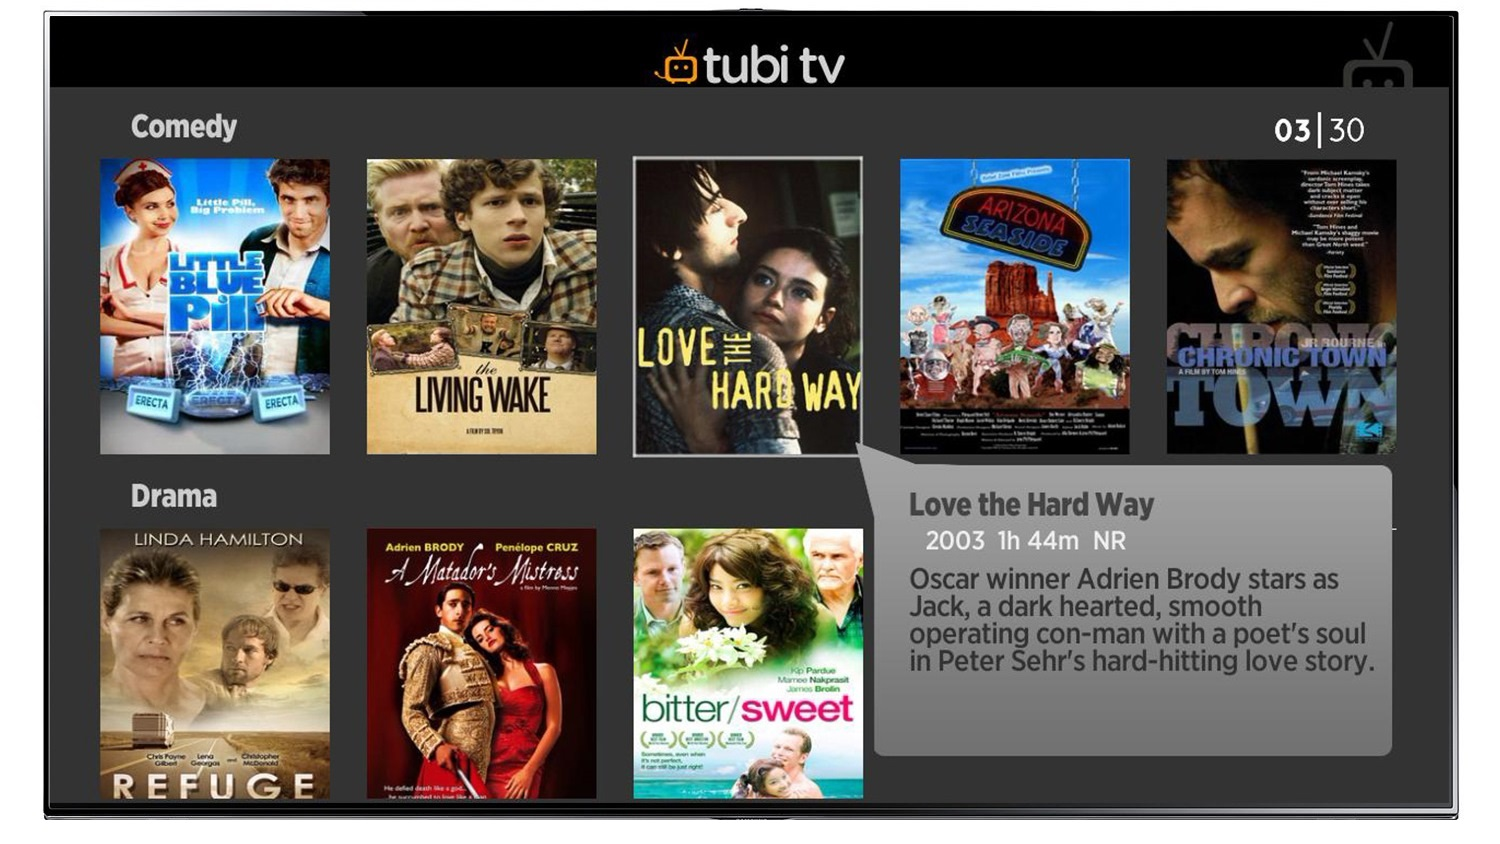 Tubi TV Free Internet Video Service Launches with 20,000 Shows and Movies (Most of Which You've Never Heard Of) - Variety